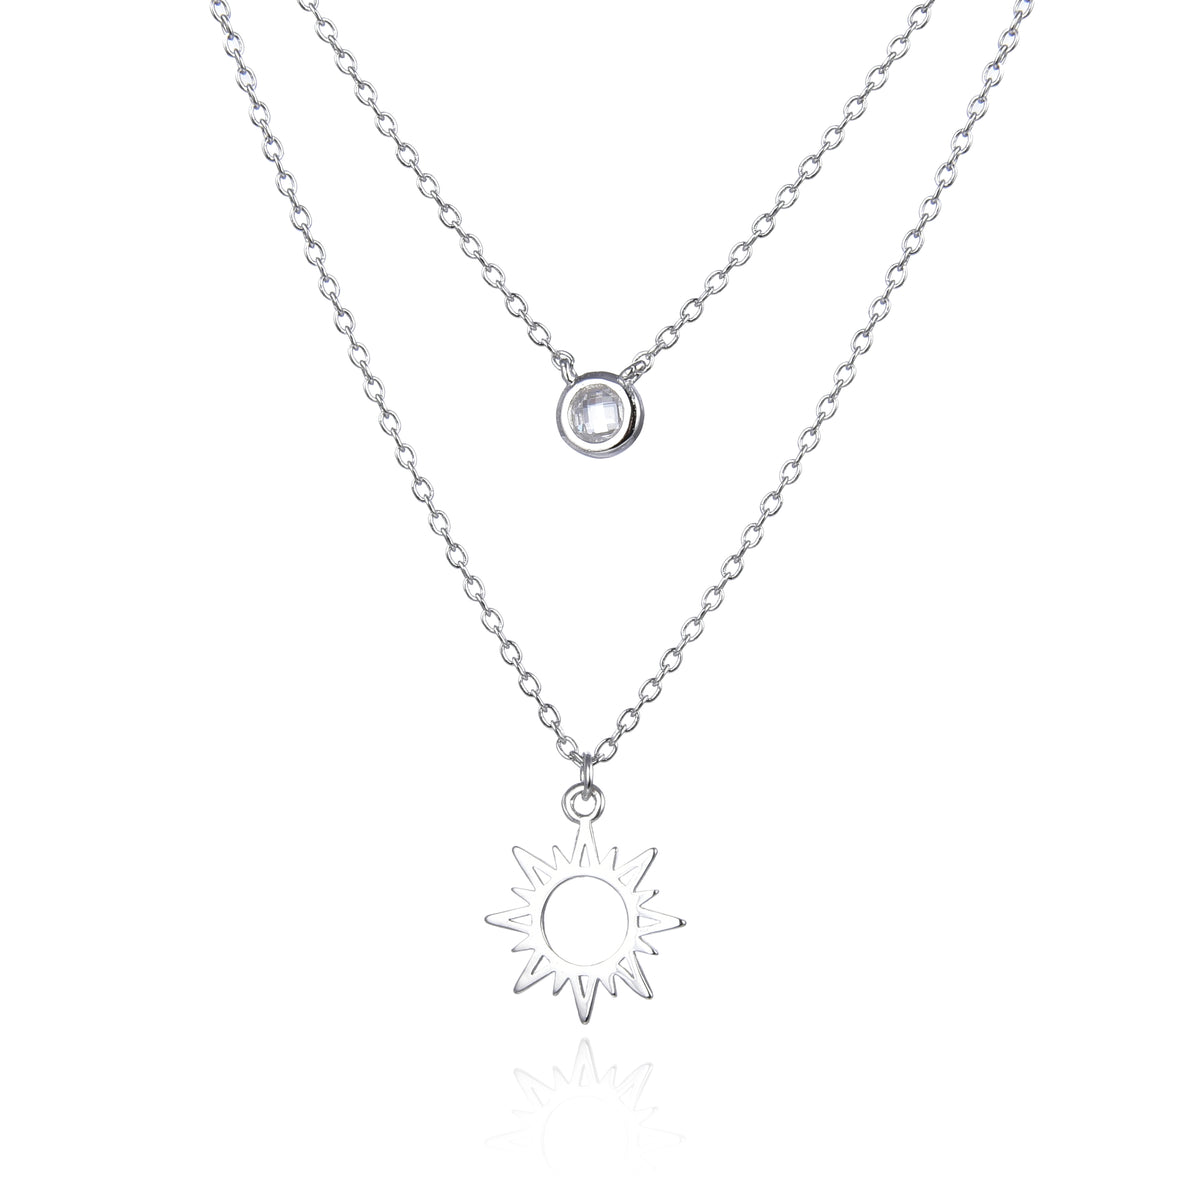 The Sun & Moon Necklace